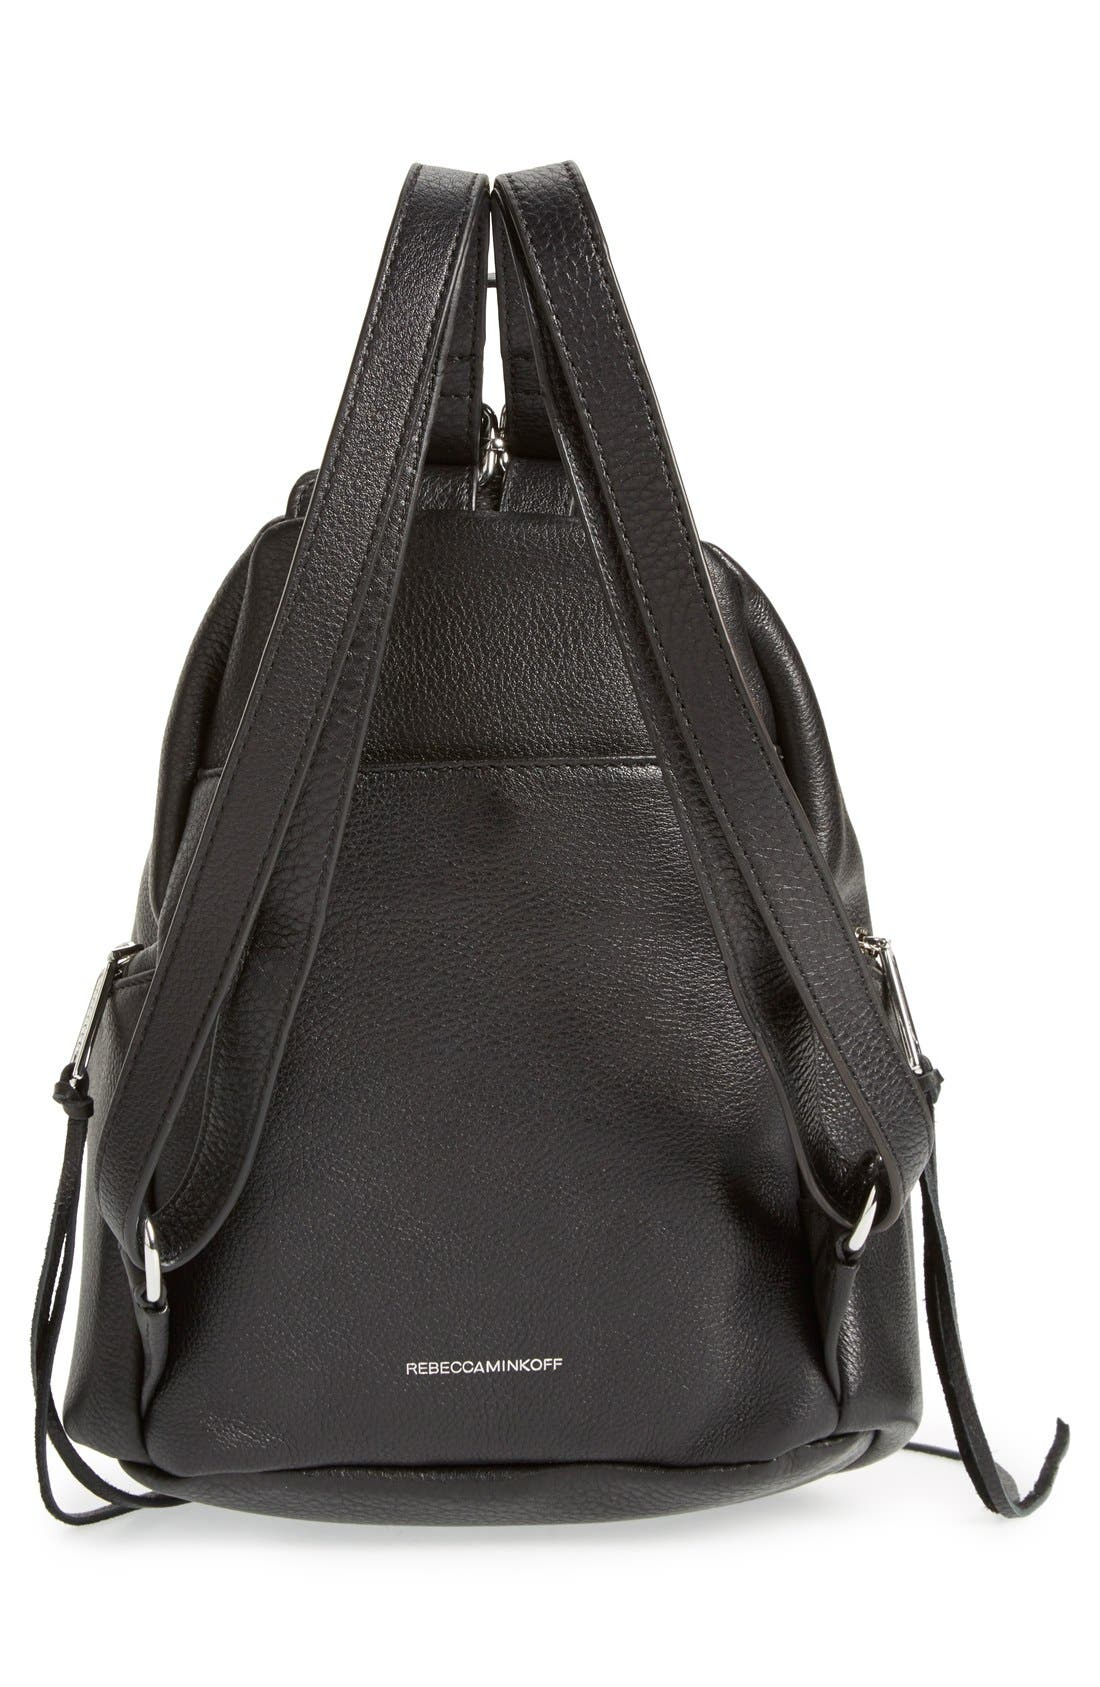 Medium Julian Backpack,                             Alternate thumbnail 3, color,                             Black/ Silver Hrdwr